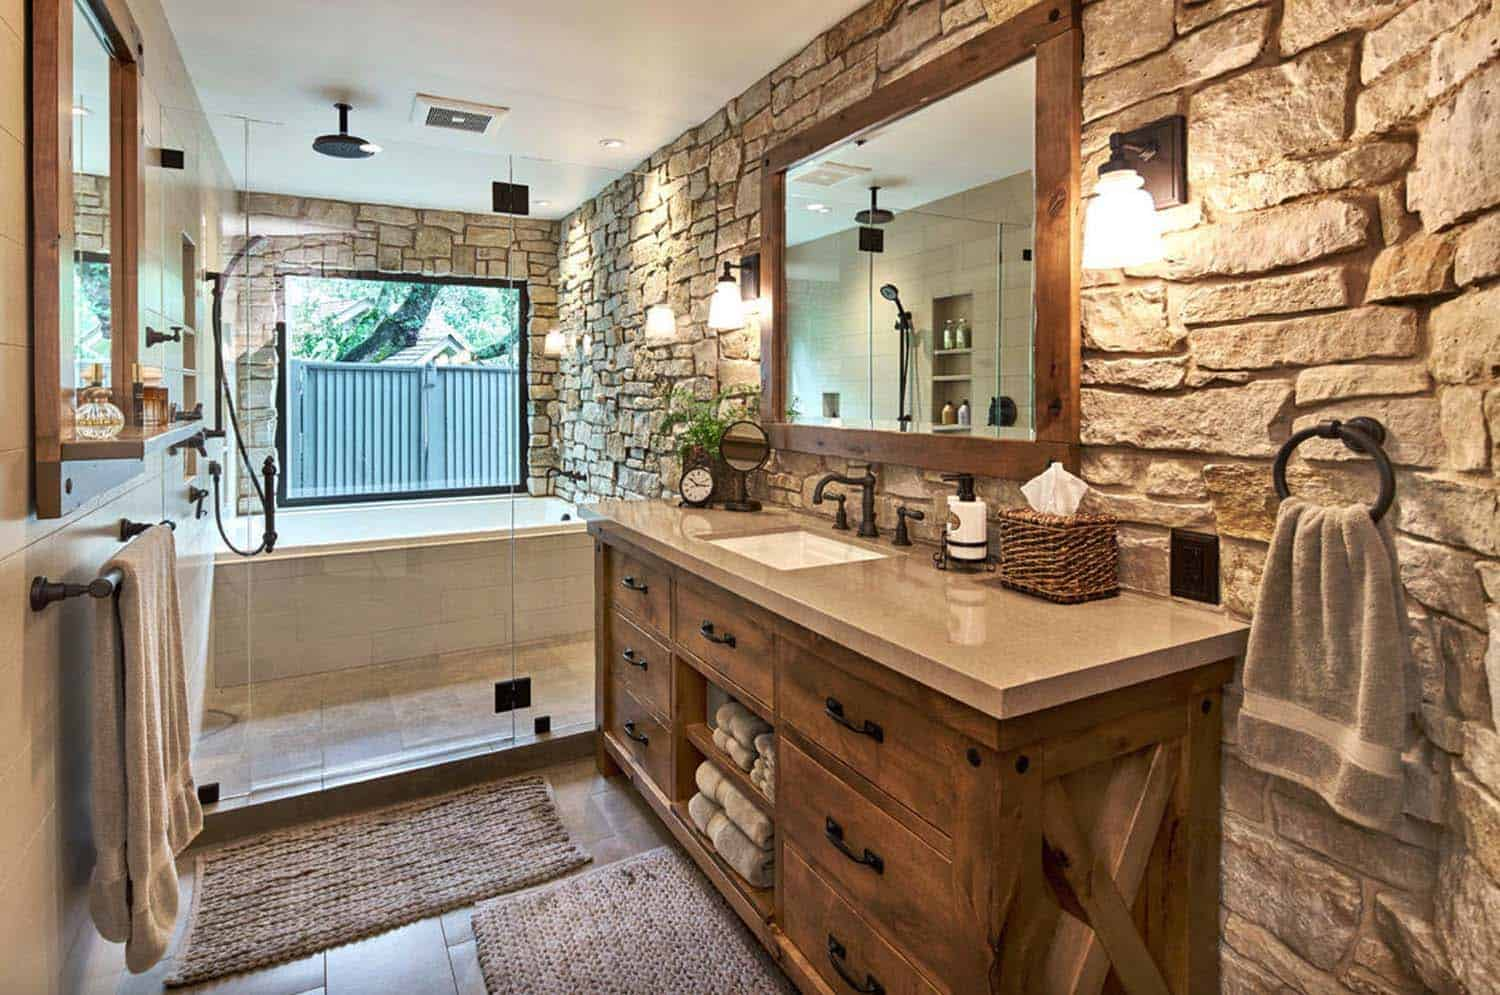 20 Inspiring Ideas To Create A Dreamy Master Bathroom Retreat